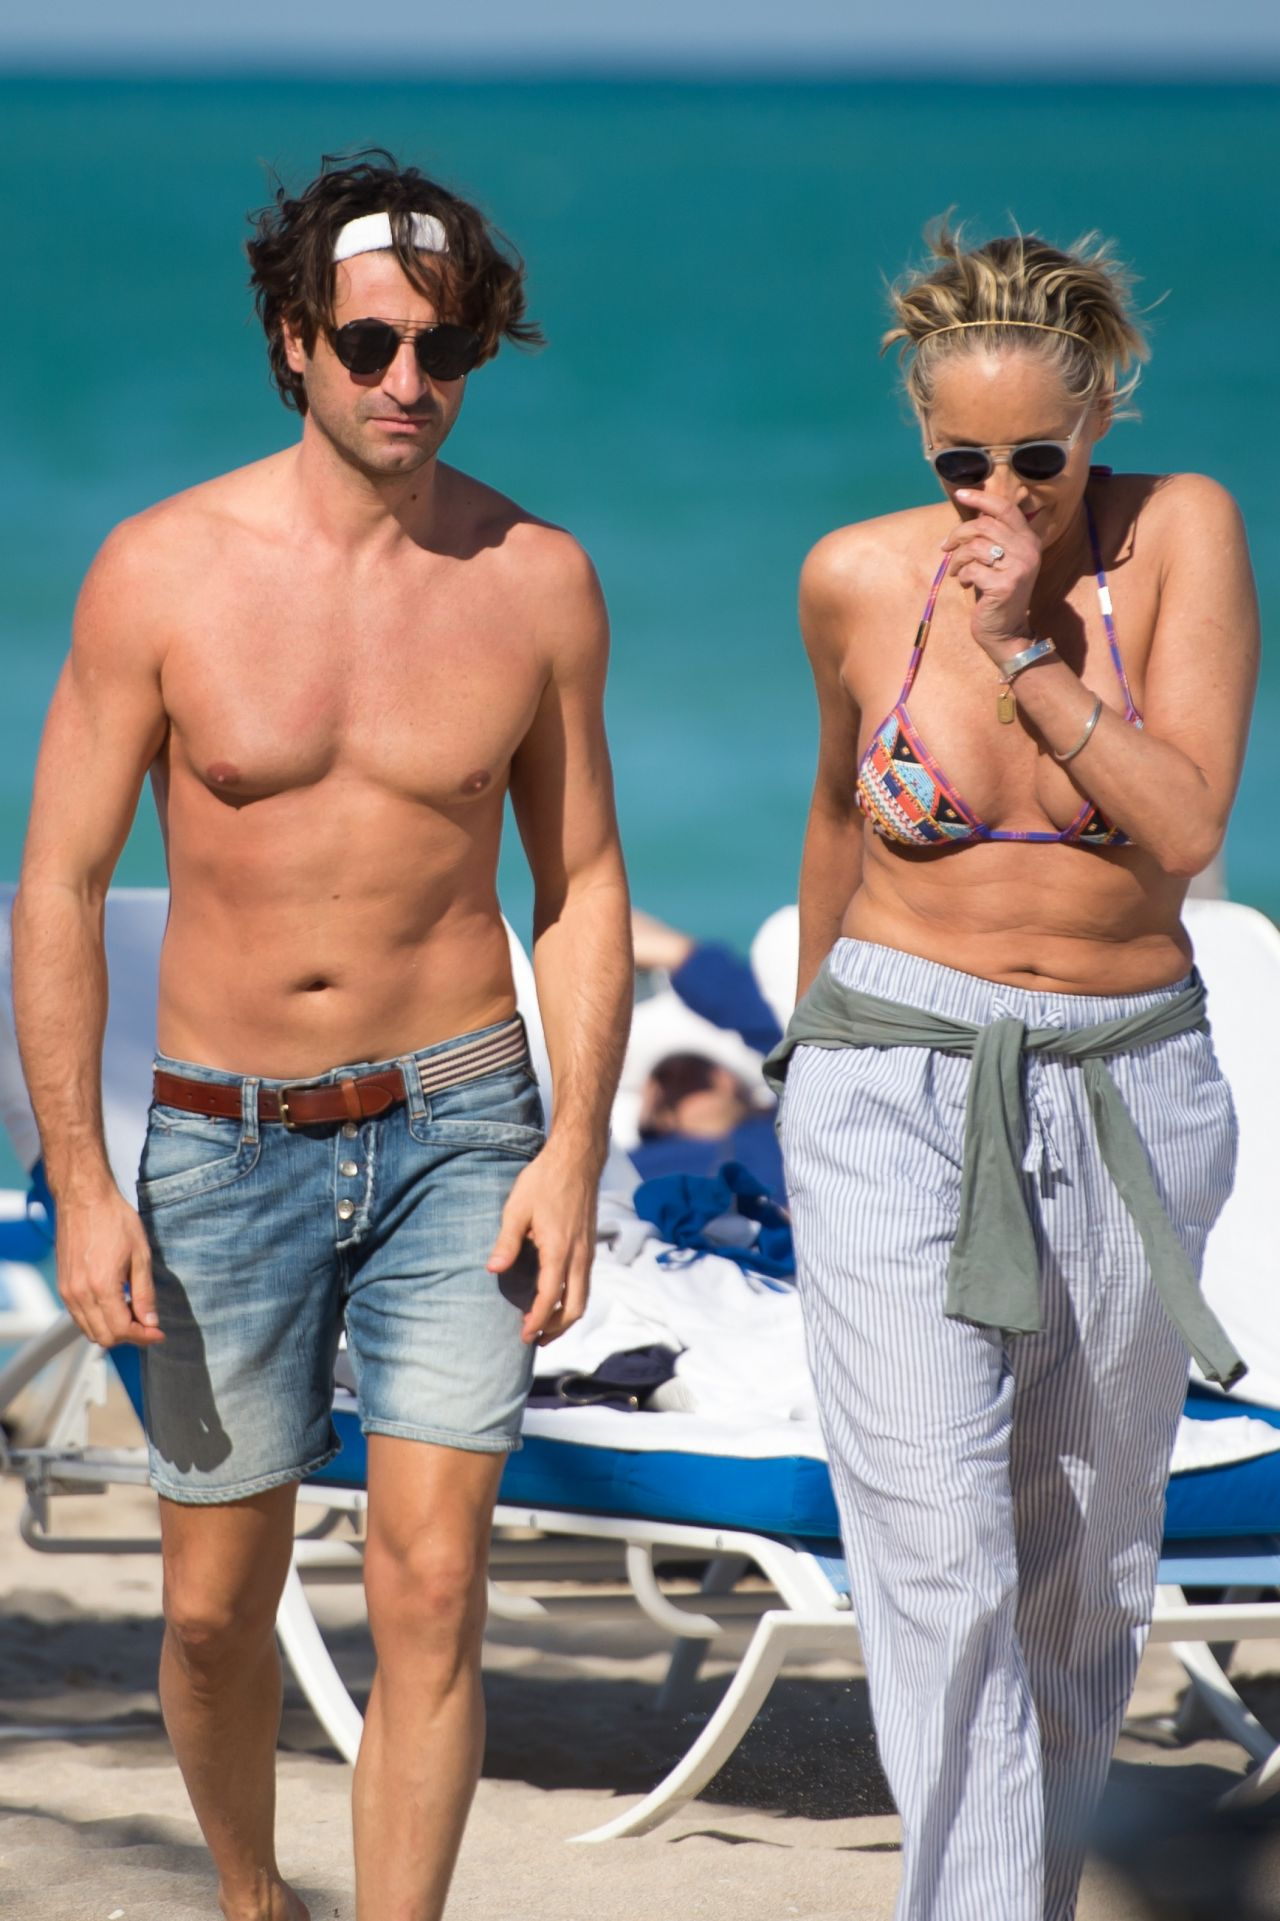 Sharon Stone in Bikini Top with her boyfriend at the beach in Miami Pic 2 of 35